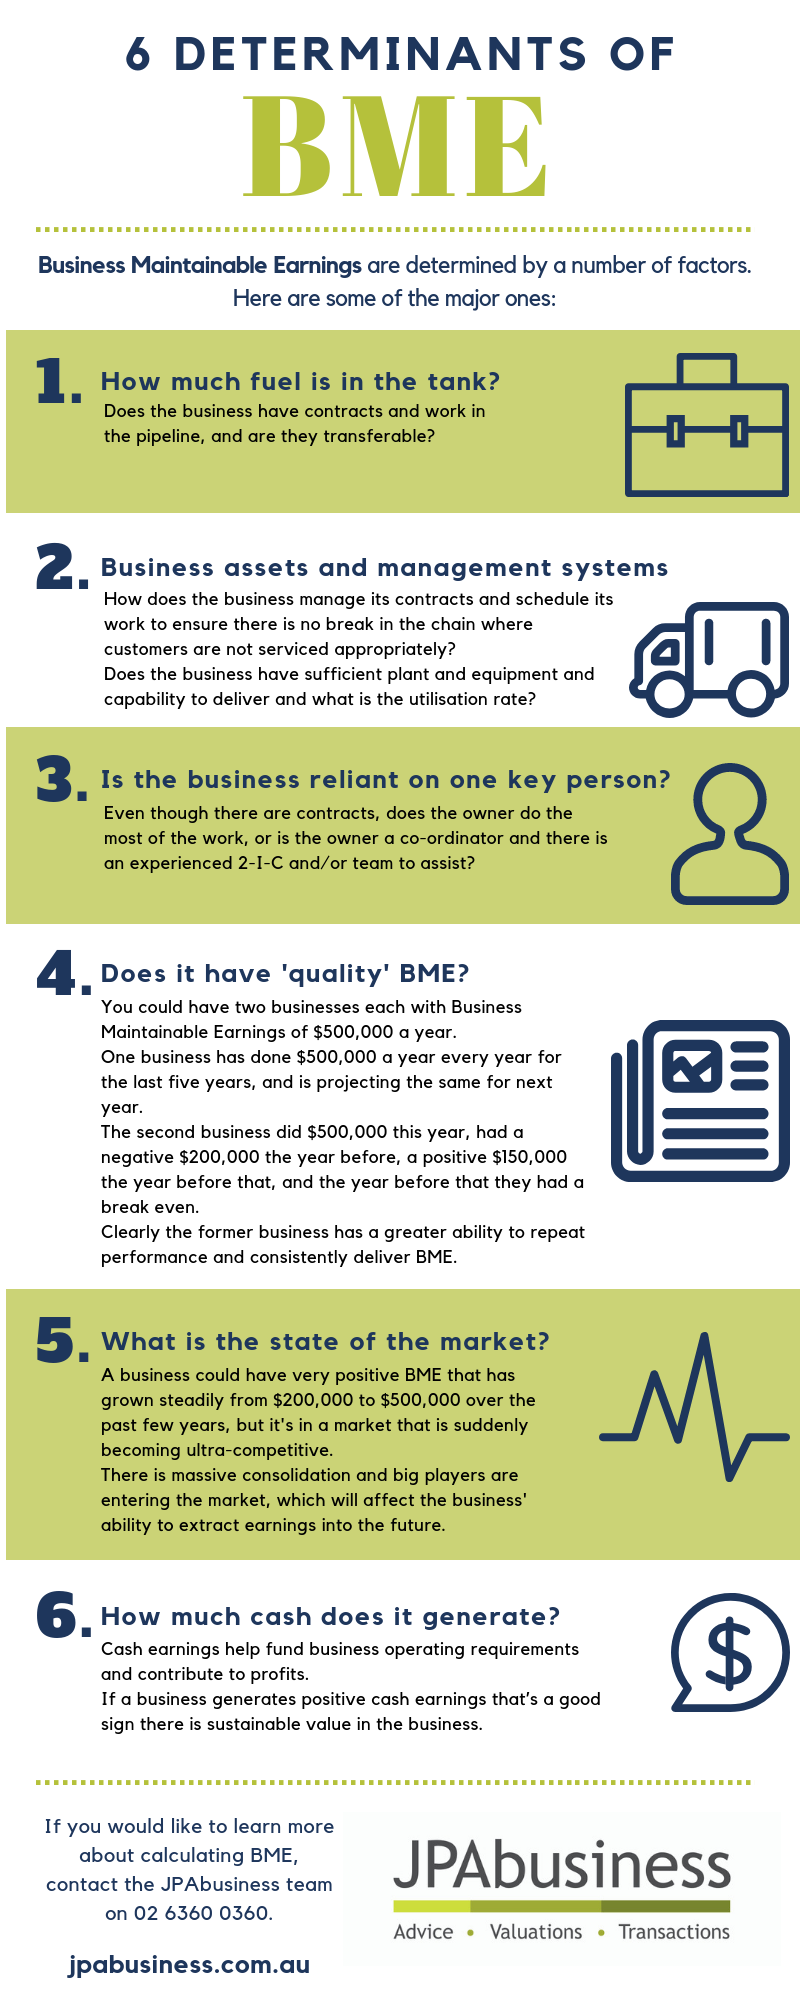 6 determinants of Business Maintainable Earnings.png